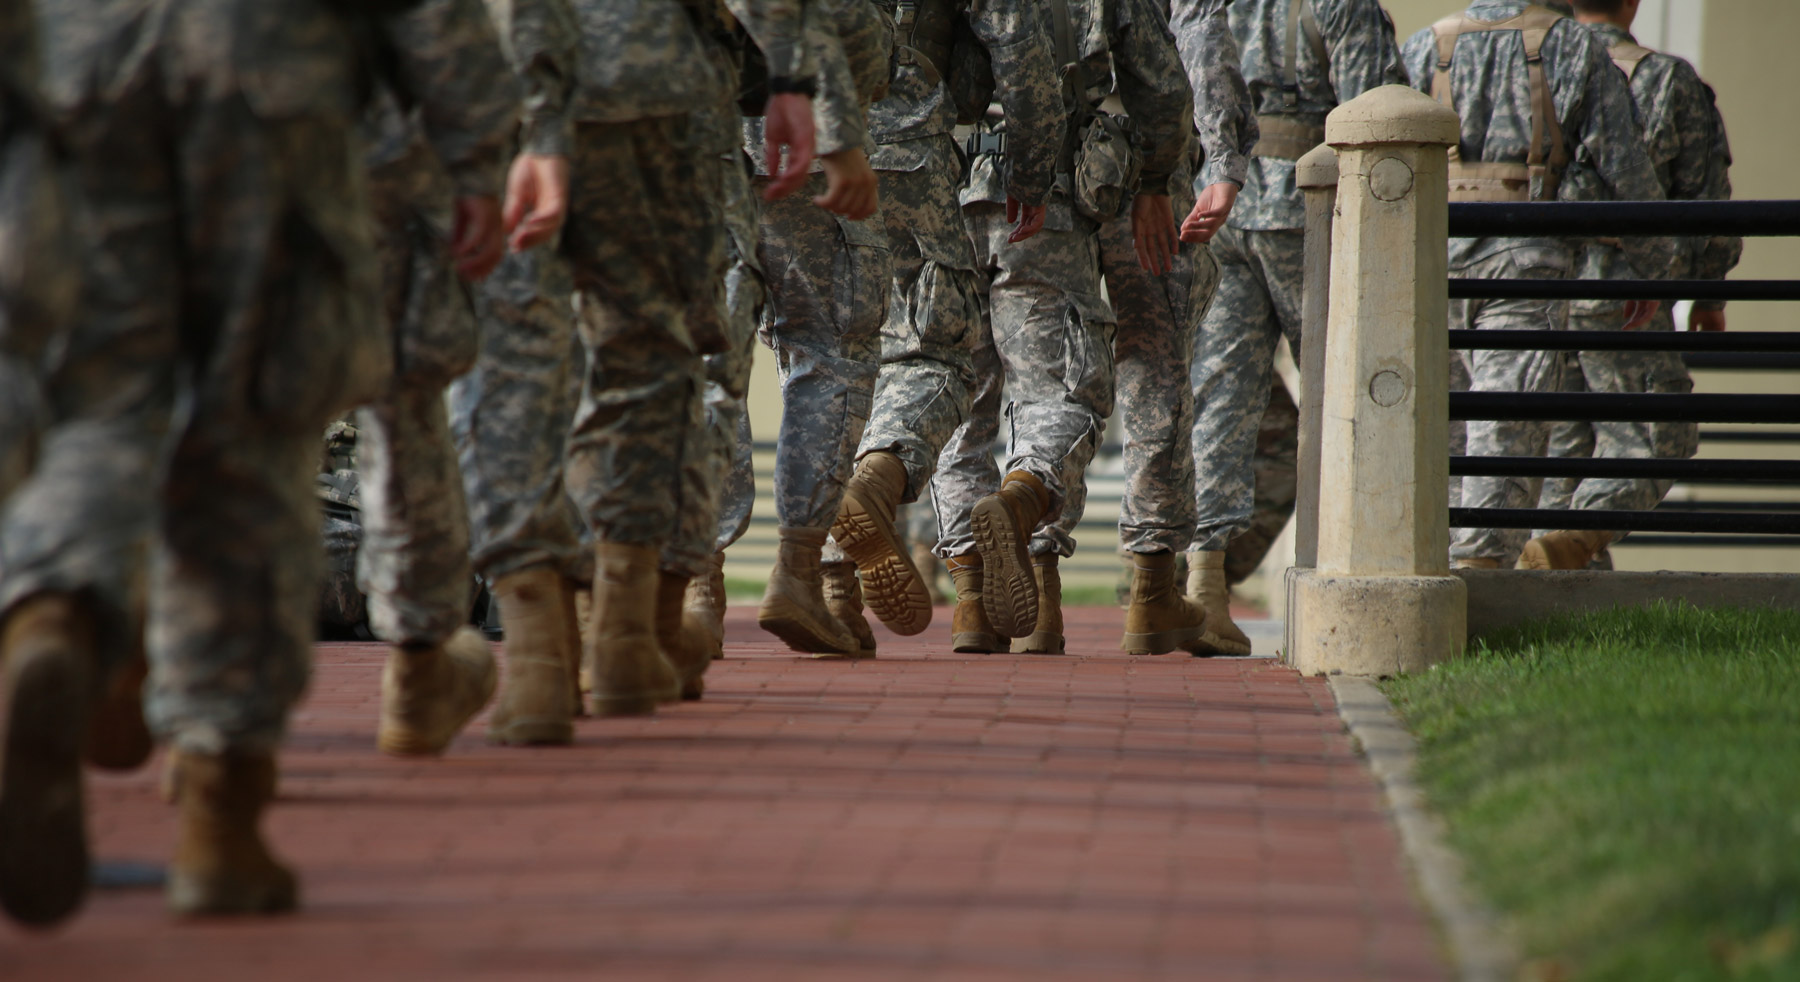 group of soldiers marching on brick path